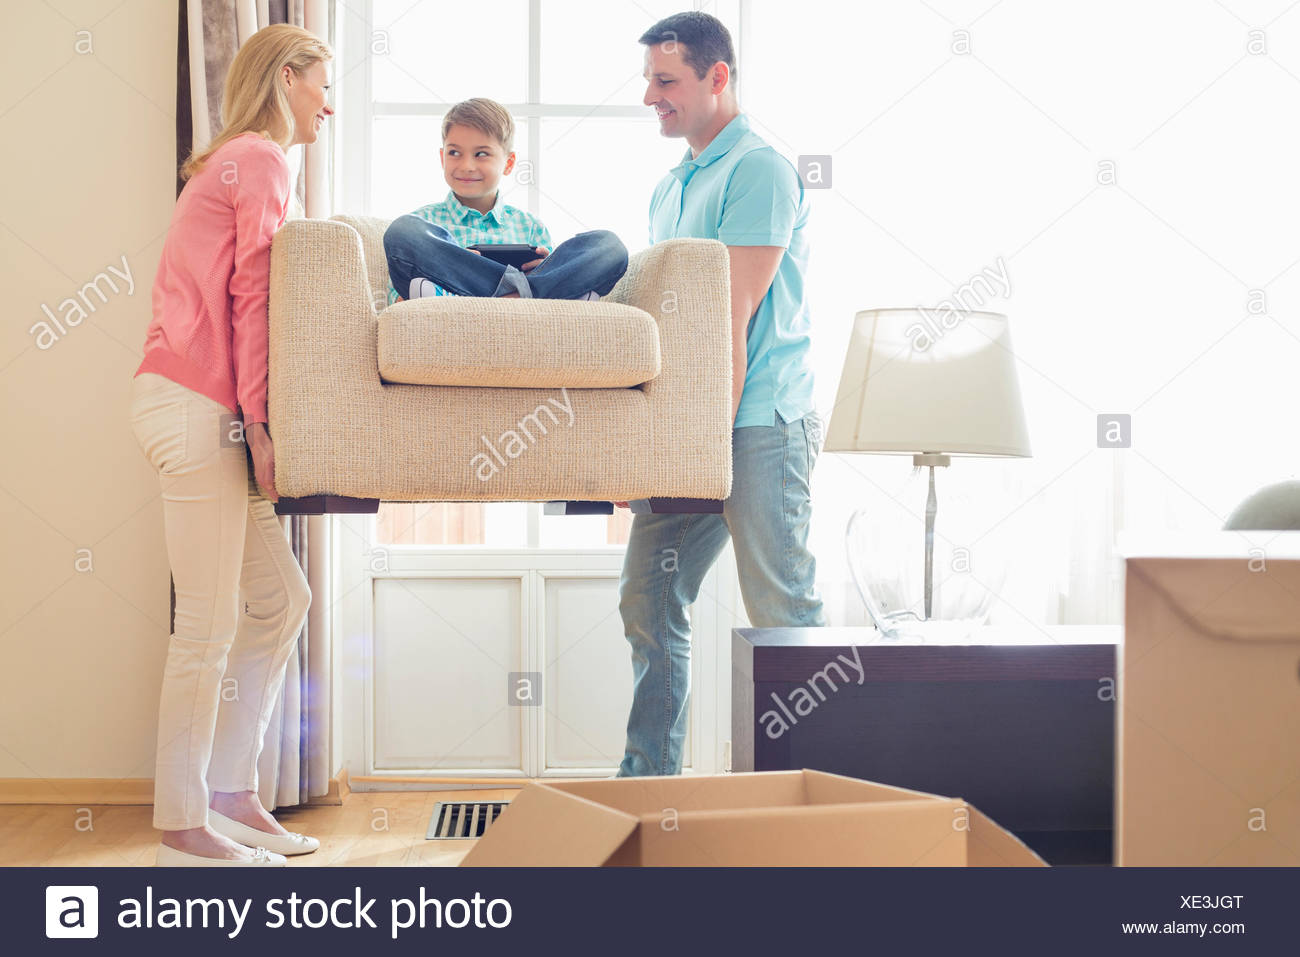 Parents carrying son on armchair in new house - Stock Image